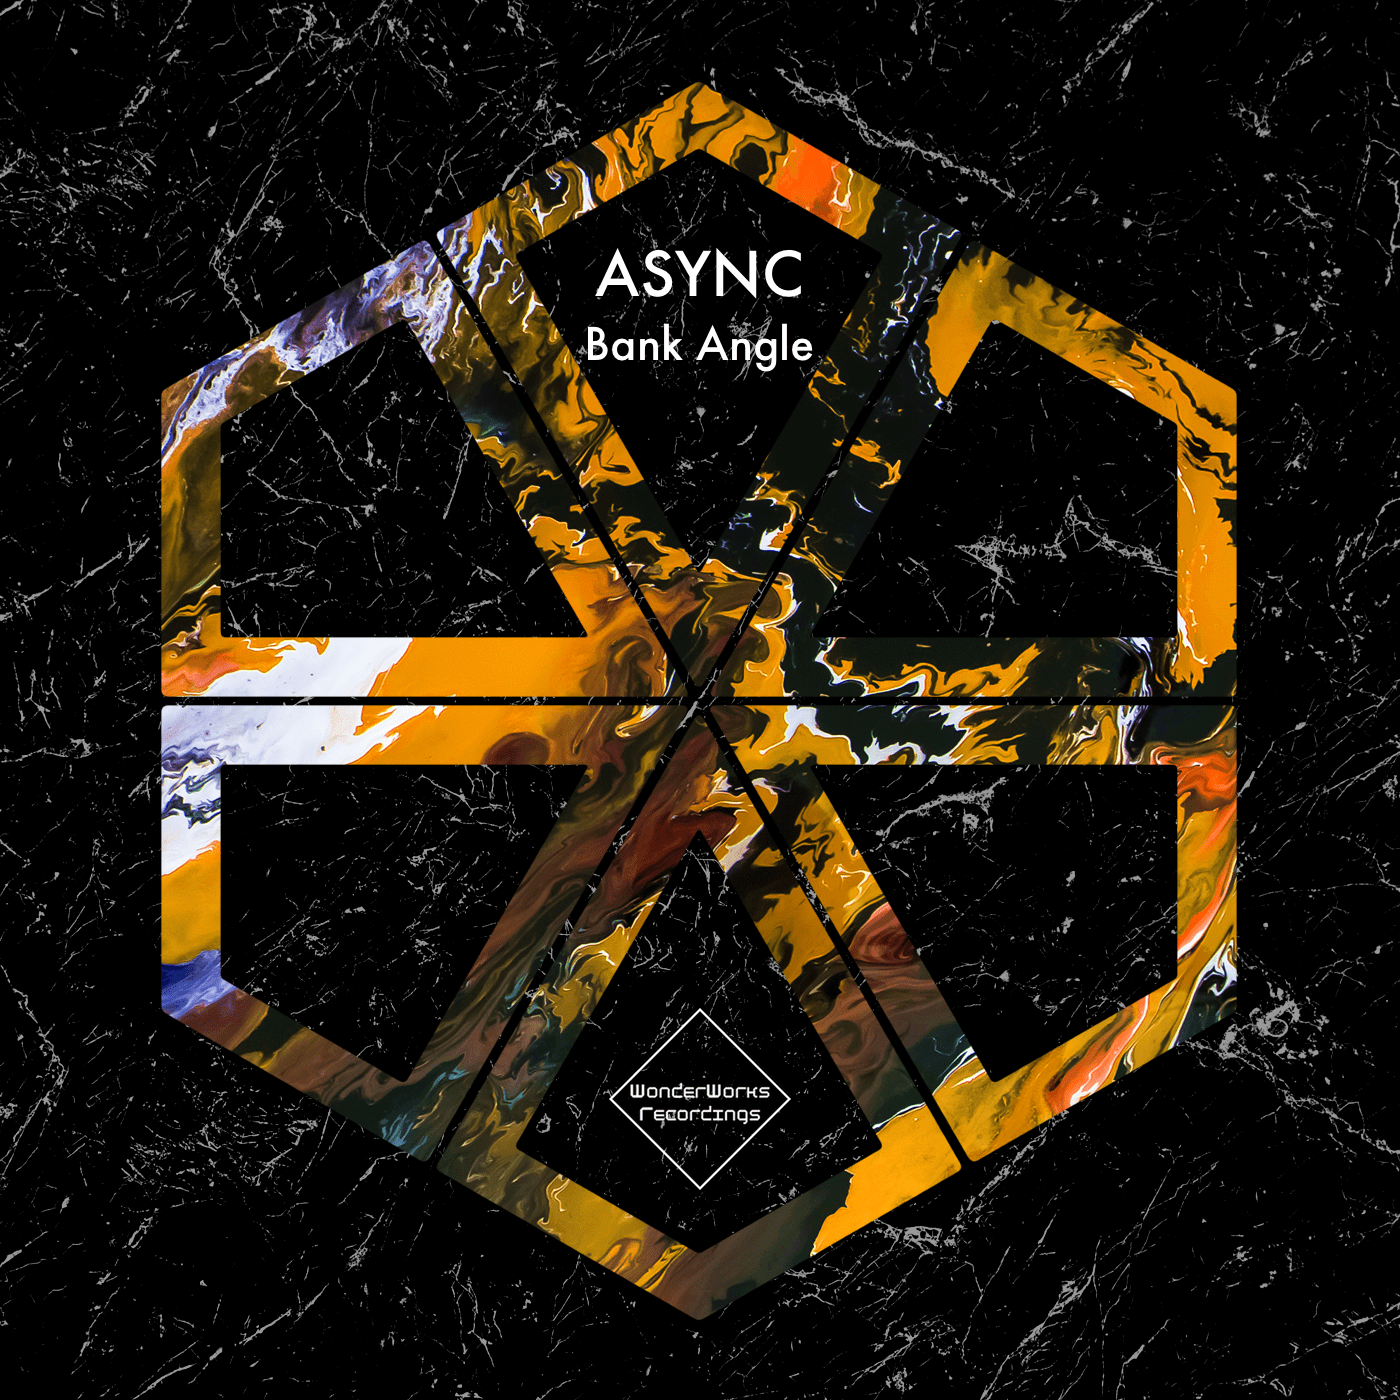 """Bank Angle"" is the new ep by Async on WonderWorks Recordings"